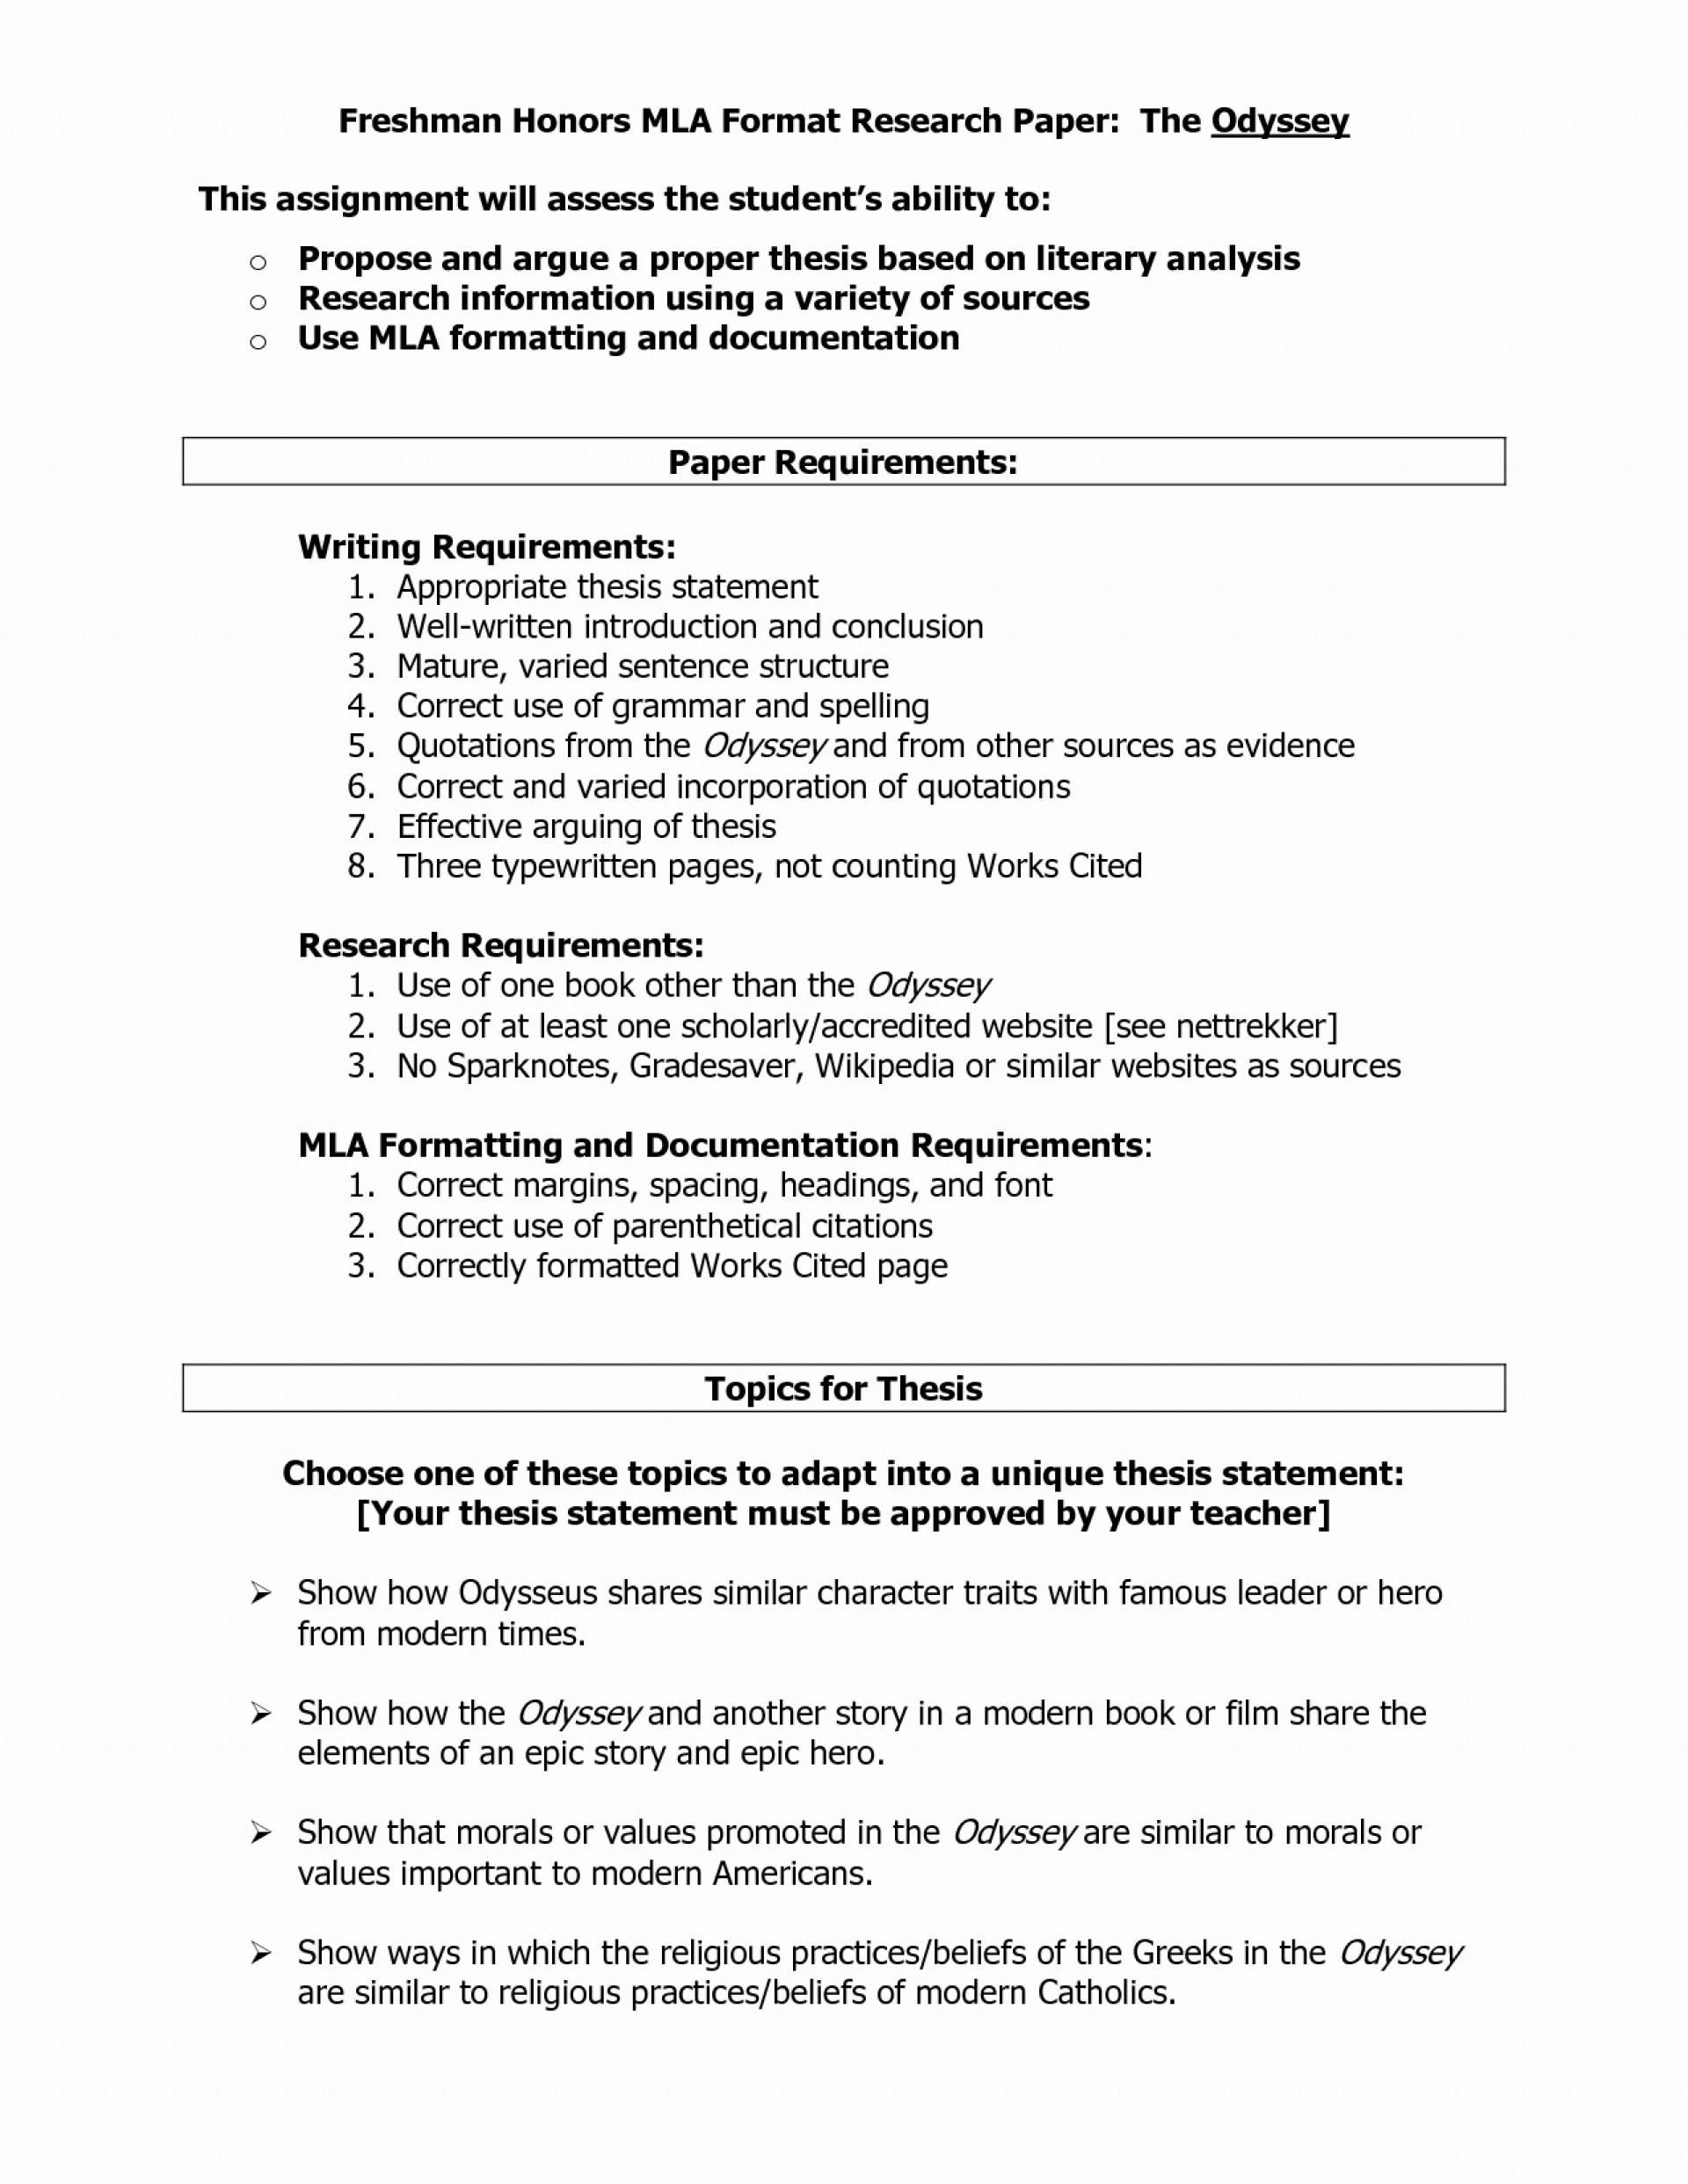 003 Proper Format For Research Paper Outline Template Apa